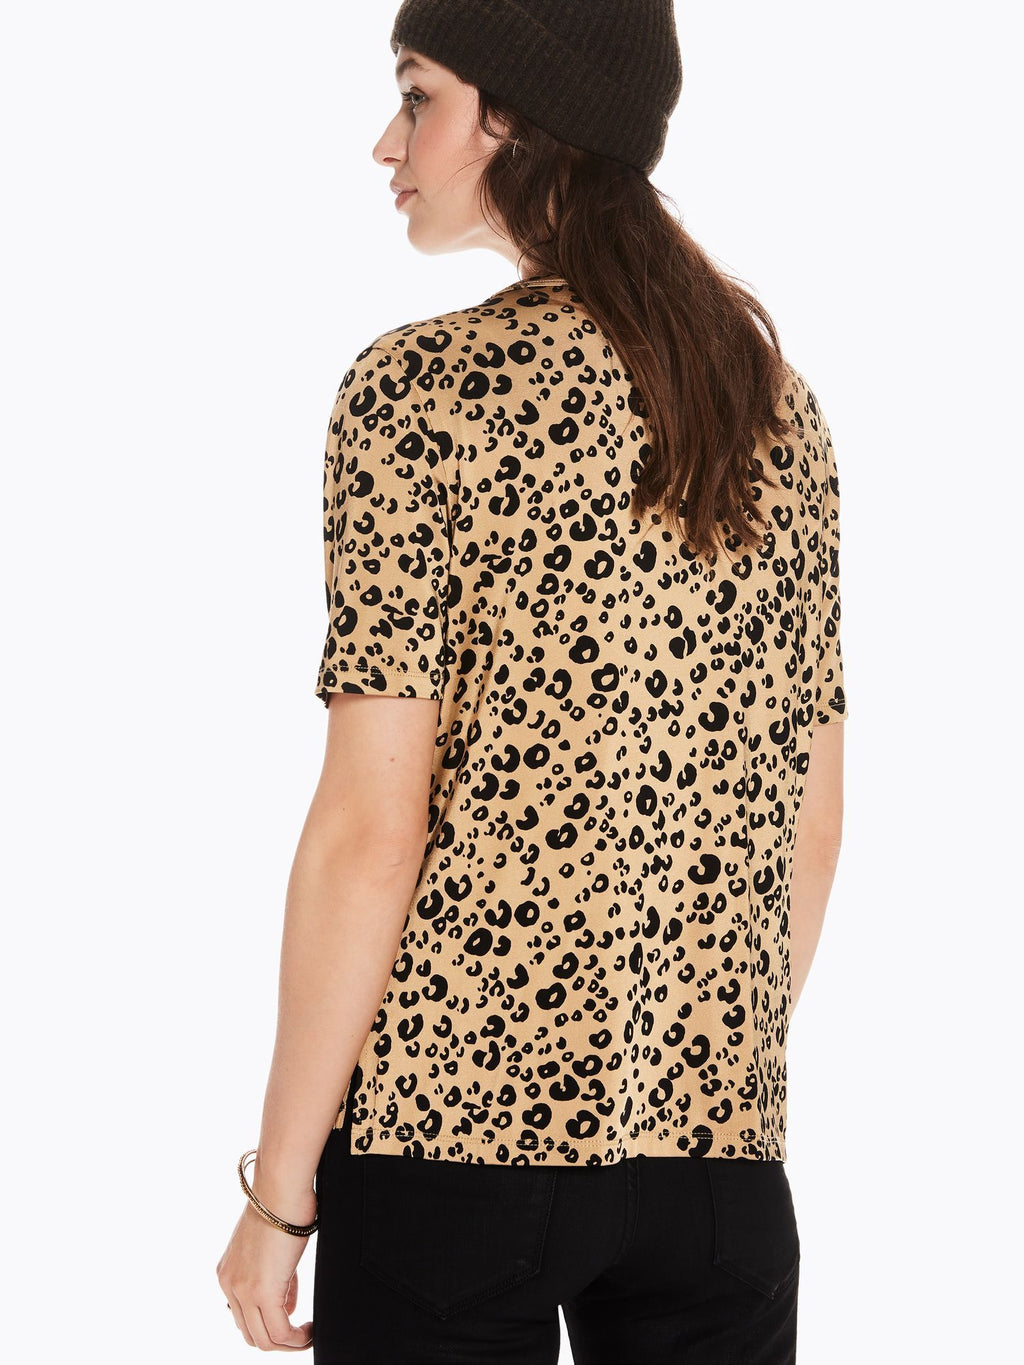 SCOTCH AND SODA - Leopard Print Mercerized Tee online at PAYA boutique